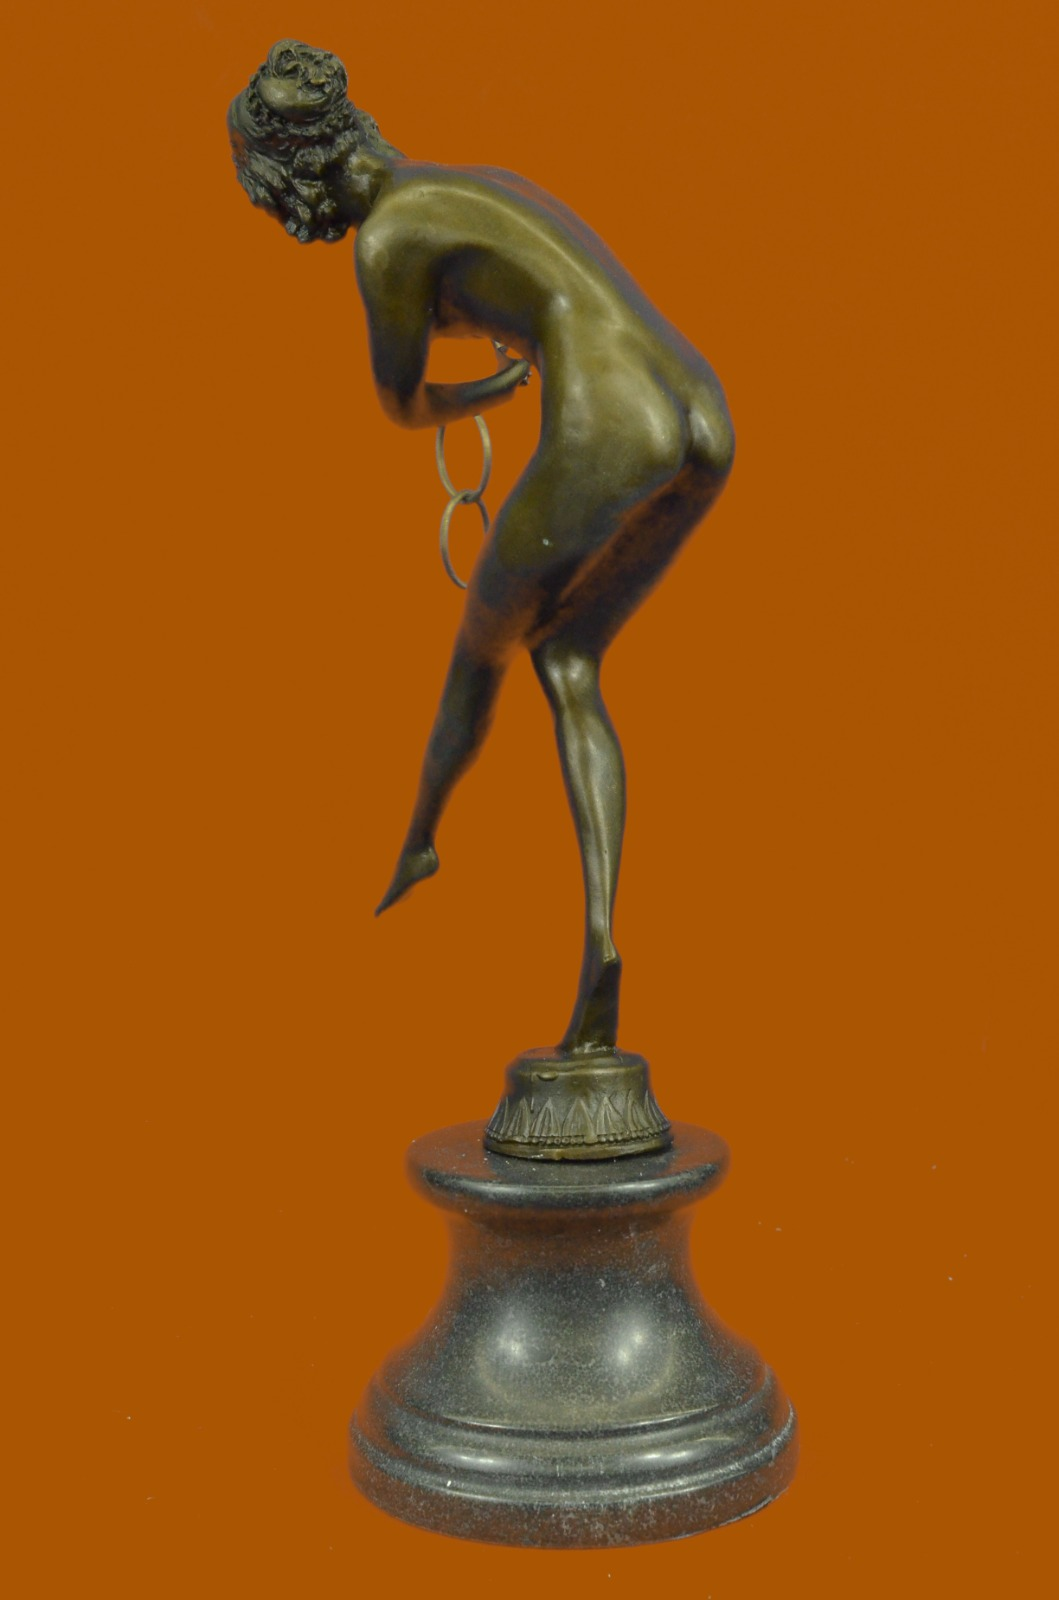 Art-Deco-Girl-With-Ring-Loops-Cl-Jr-Colinet-HG-statue-sculpture-bronze-figurines